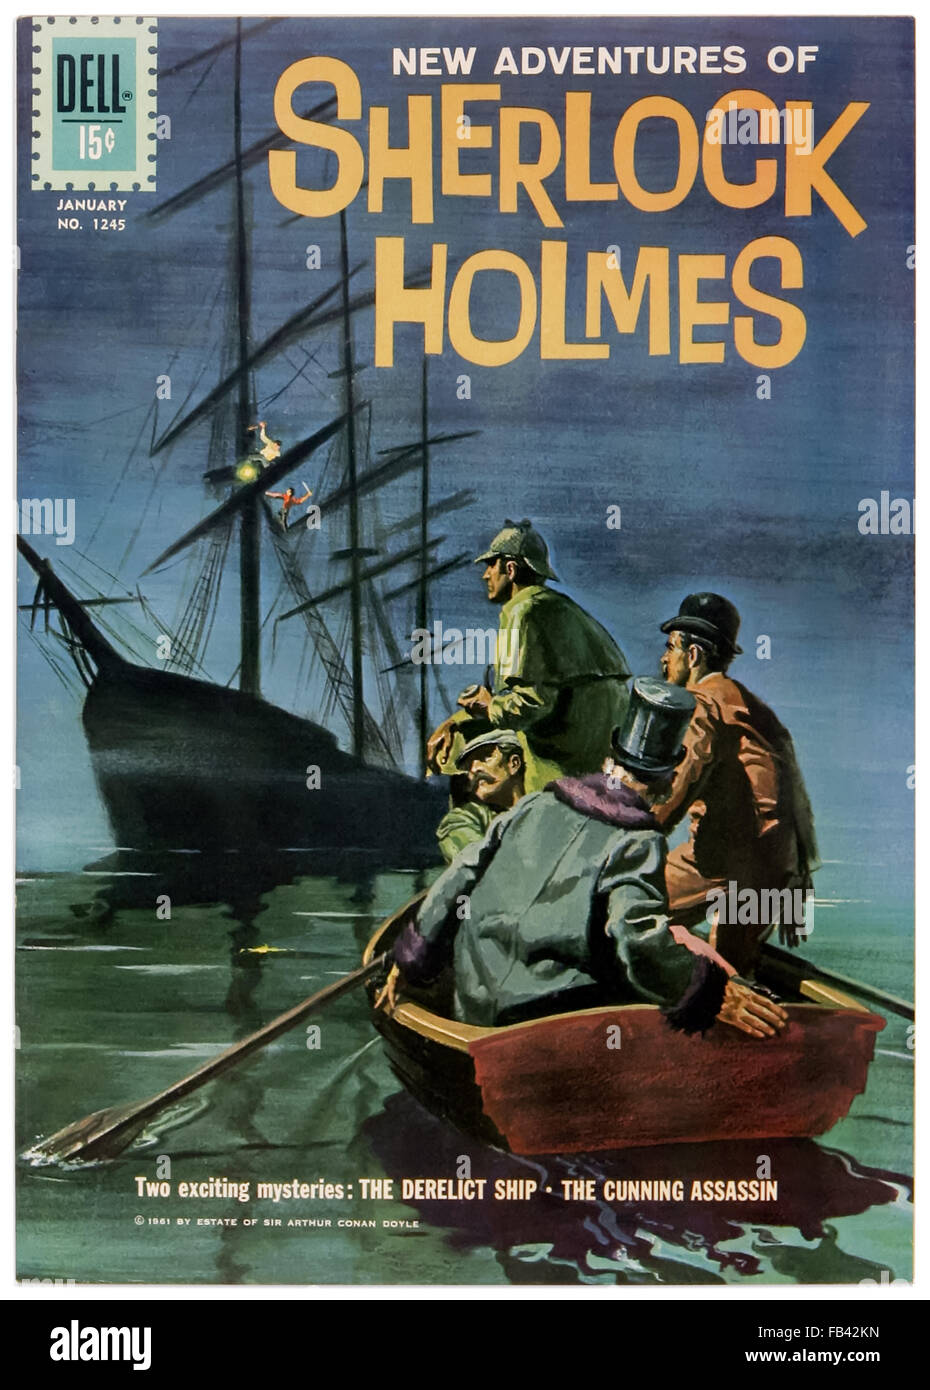 'The New Adventures of Sherlock Holmes' Dell Comics Issue 1169 January 1961  comic book adaptation illustrated by Frank Giacoia (1924-1988) featuring  'The ...